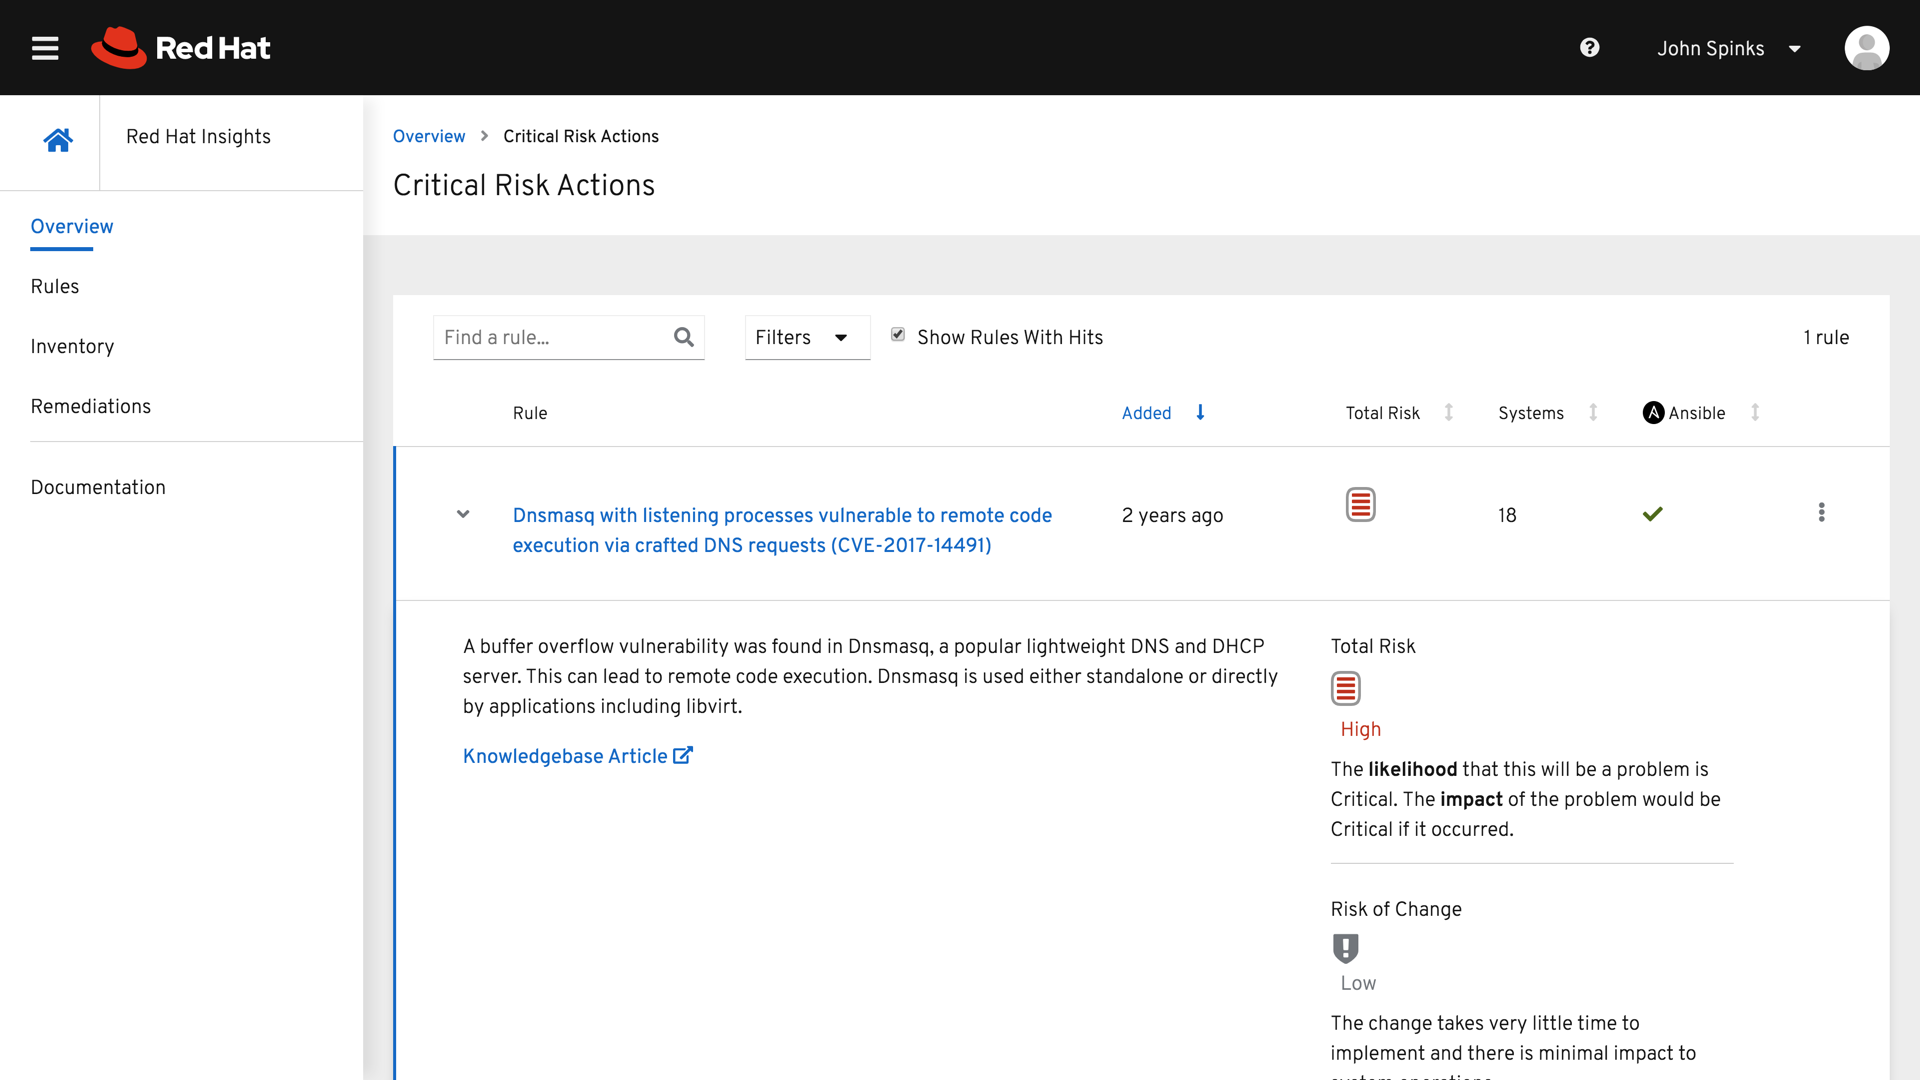 Red Hat Insights Critical Risk Actions page